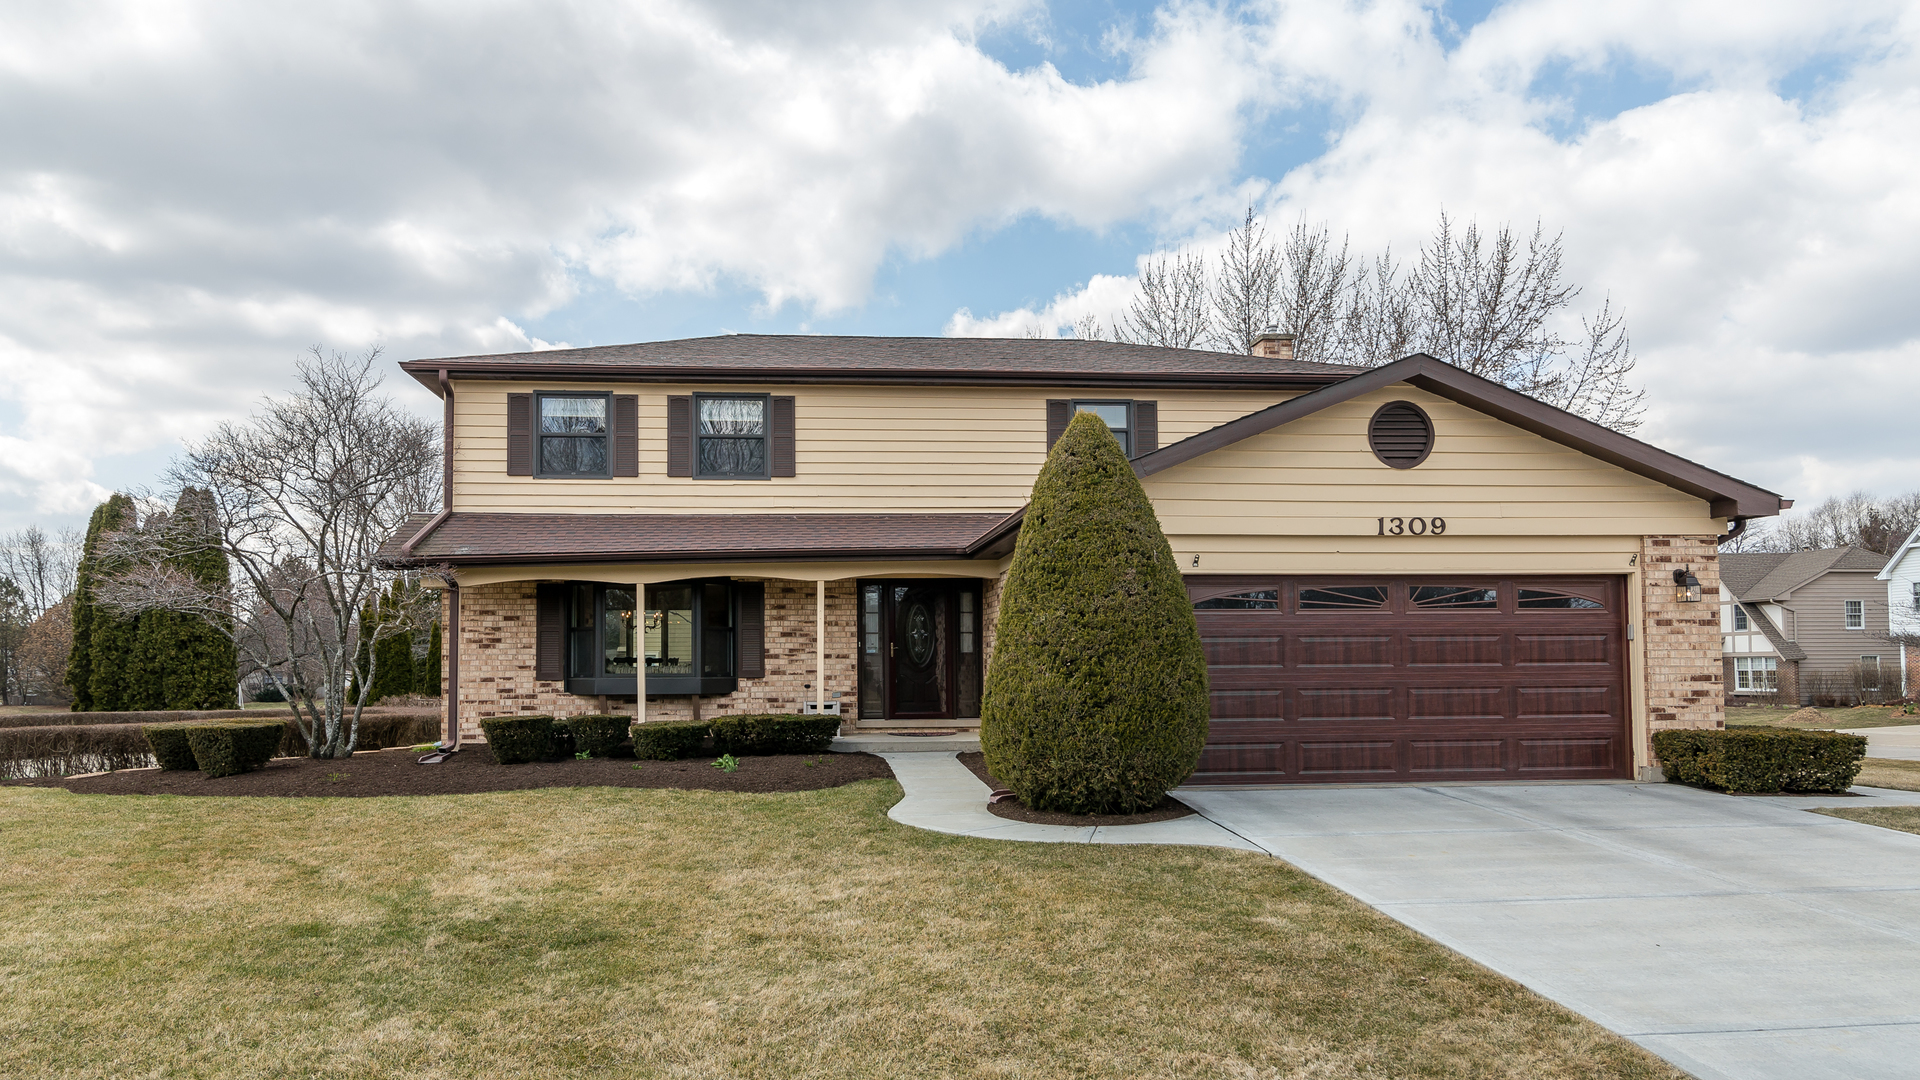 1309 Romeo Court, Libertyville in Lake County, IL 60048 Home for Sale